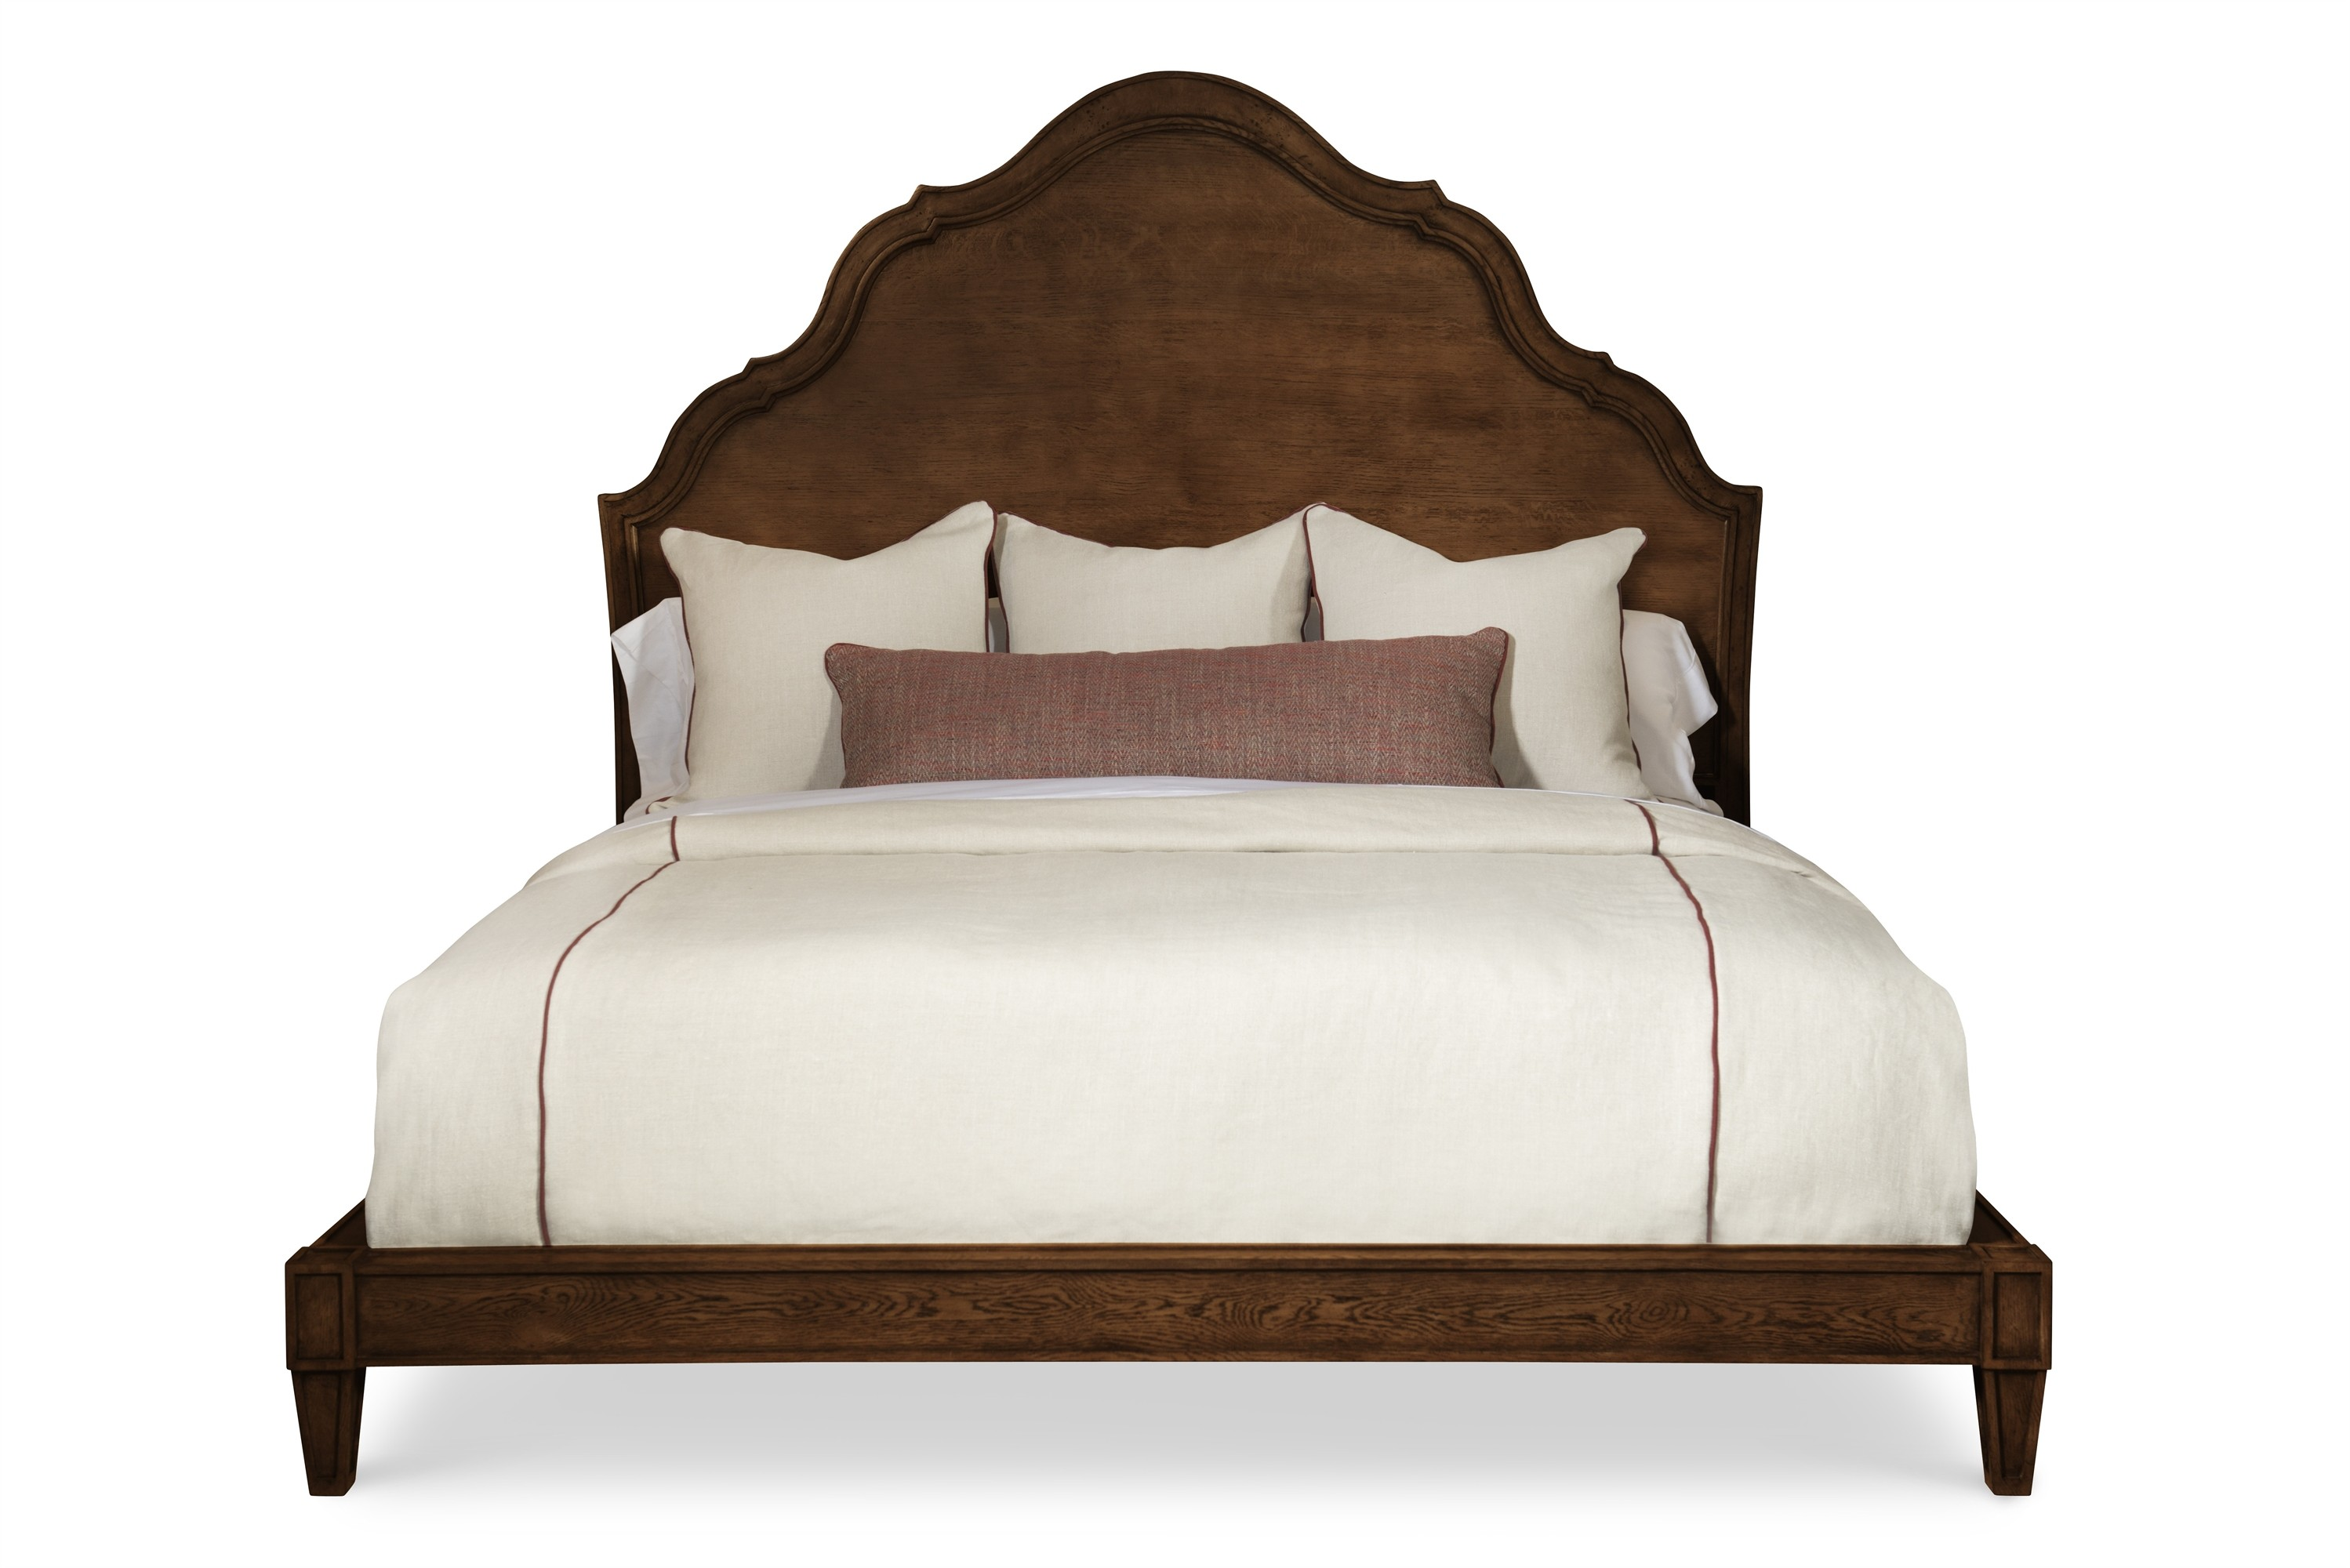 Casa Bella Carved Bed - King Size 6/6 - Sierra Finish